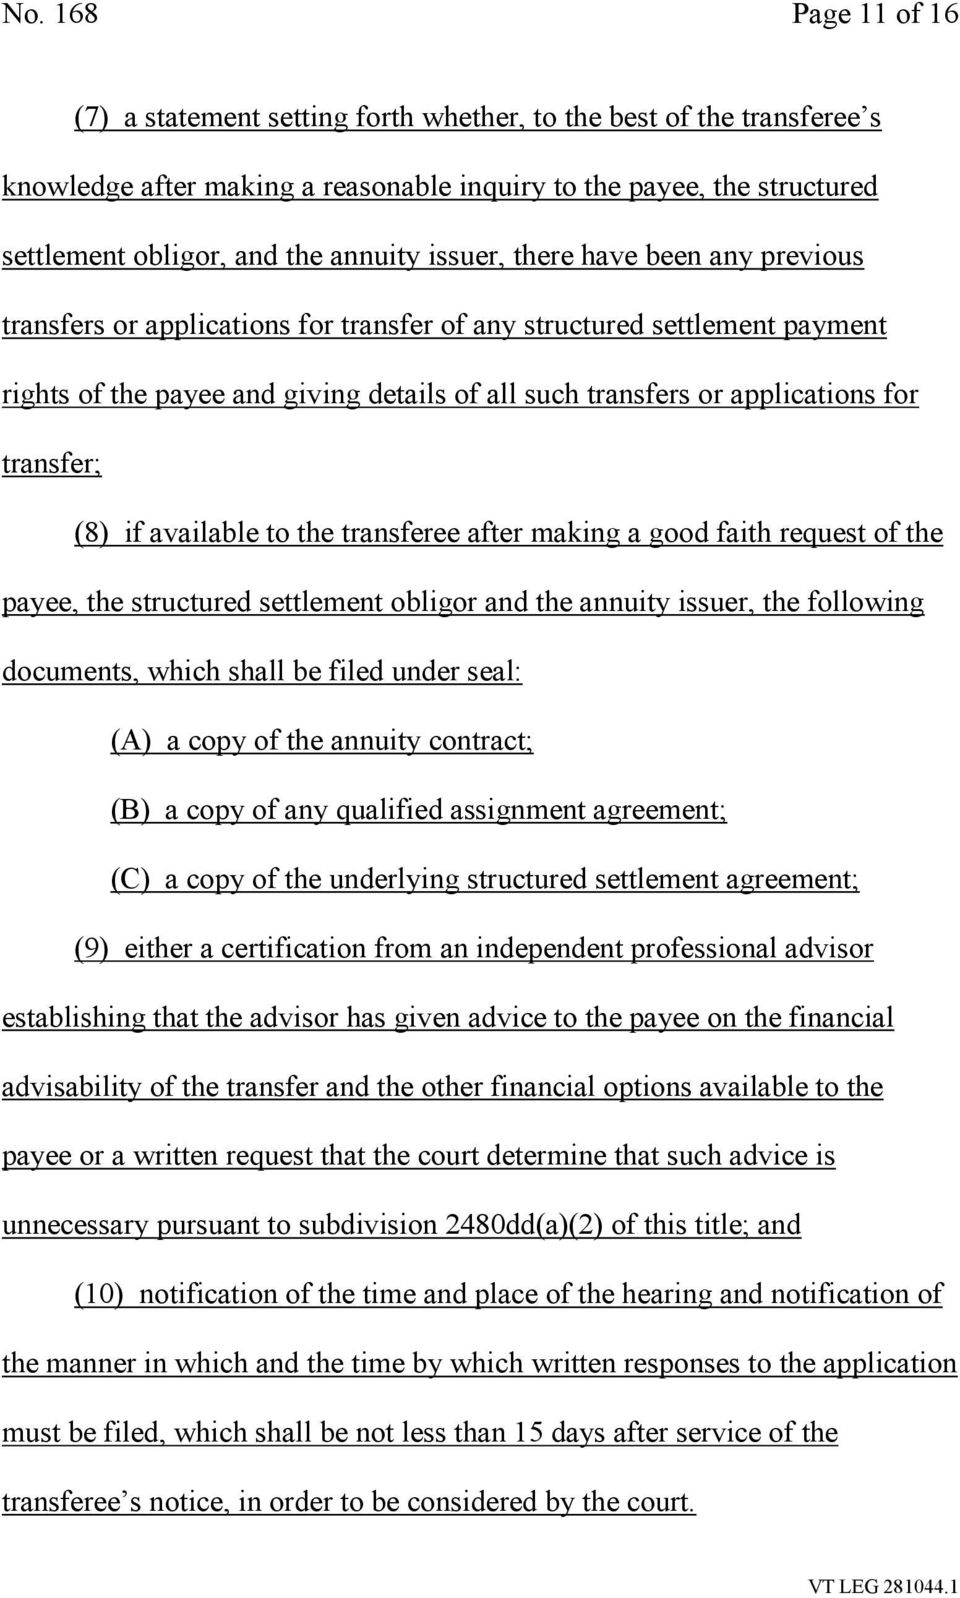 for transfer; (8) if available to the transferee after making a good faith request of the payee, the structured settlement obligor and the annuity issuer, the following documents, which shall be